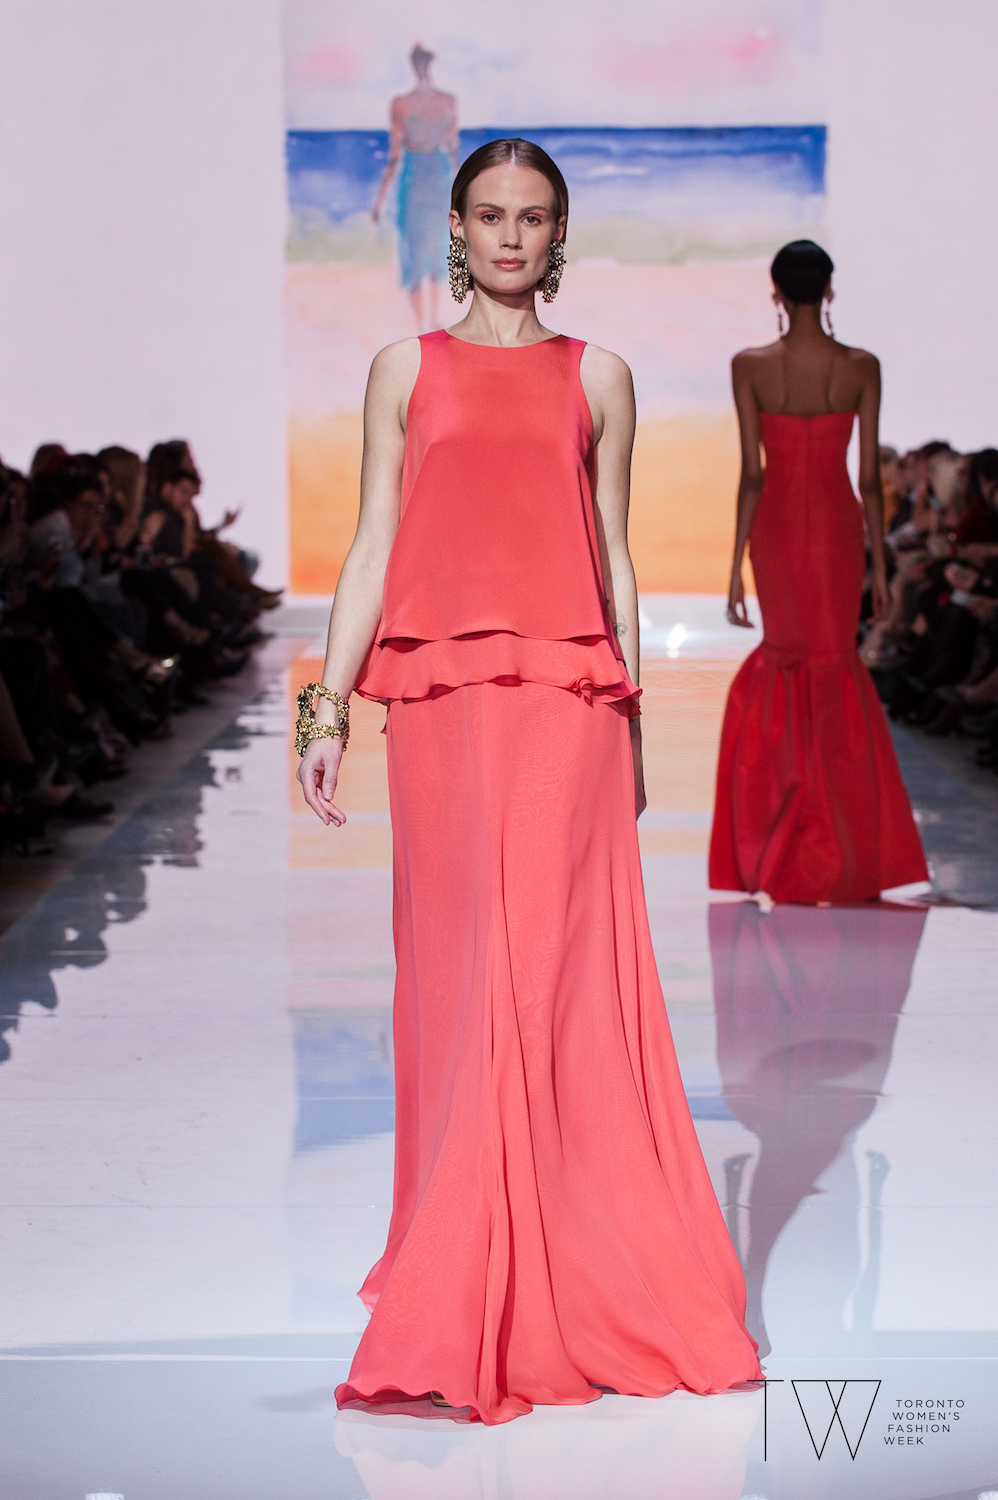 david-dixon-dr-john-semple-tw-toronto-womens-fashion-week-photo-credit-che-rosales-coral-look-2.jpg